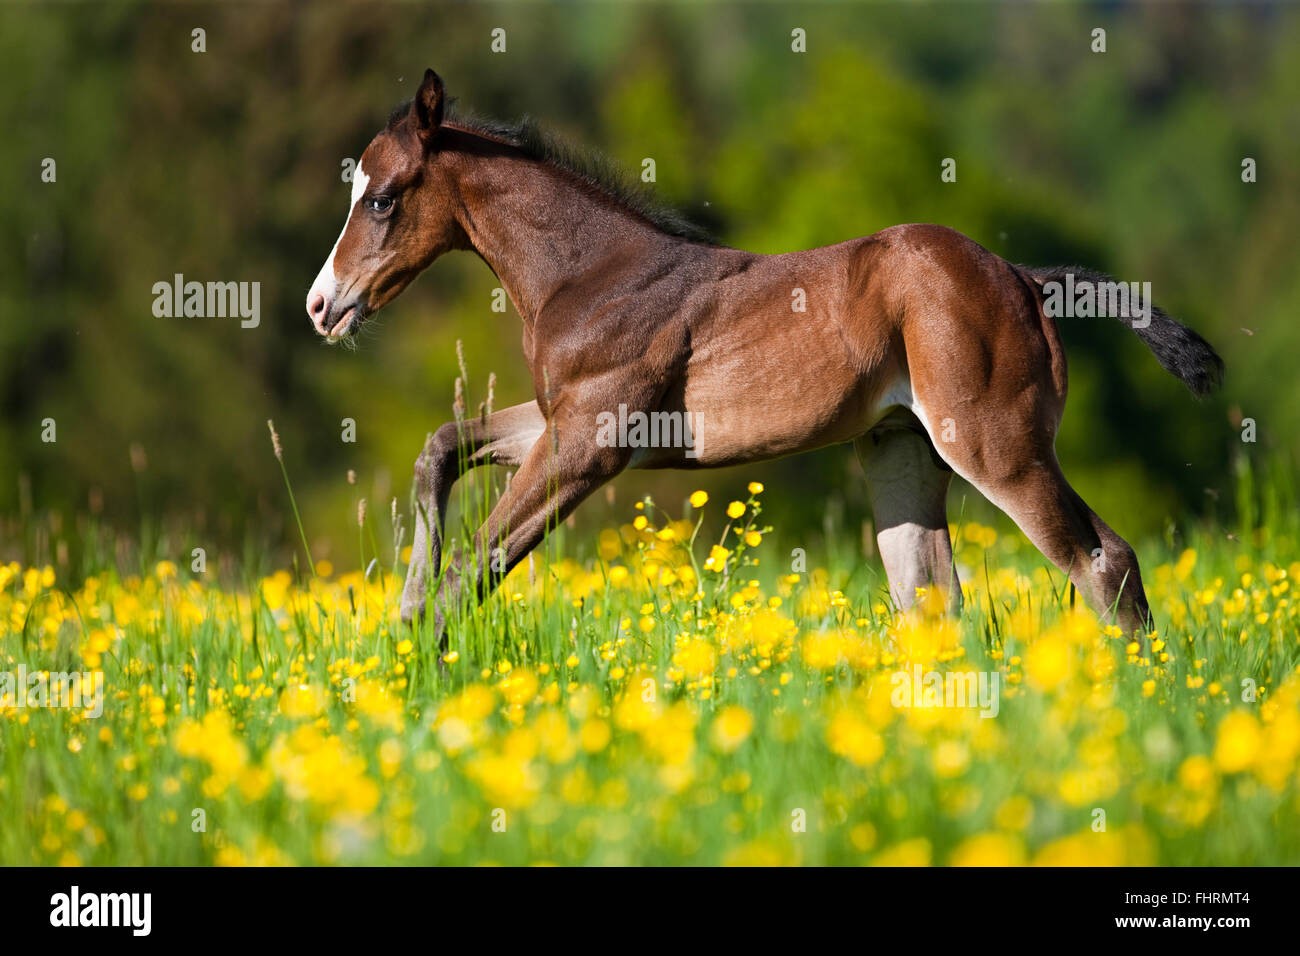 Paint Horse, bay horse, foal galloping through flower meadow - Stock Image